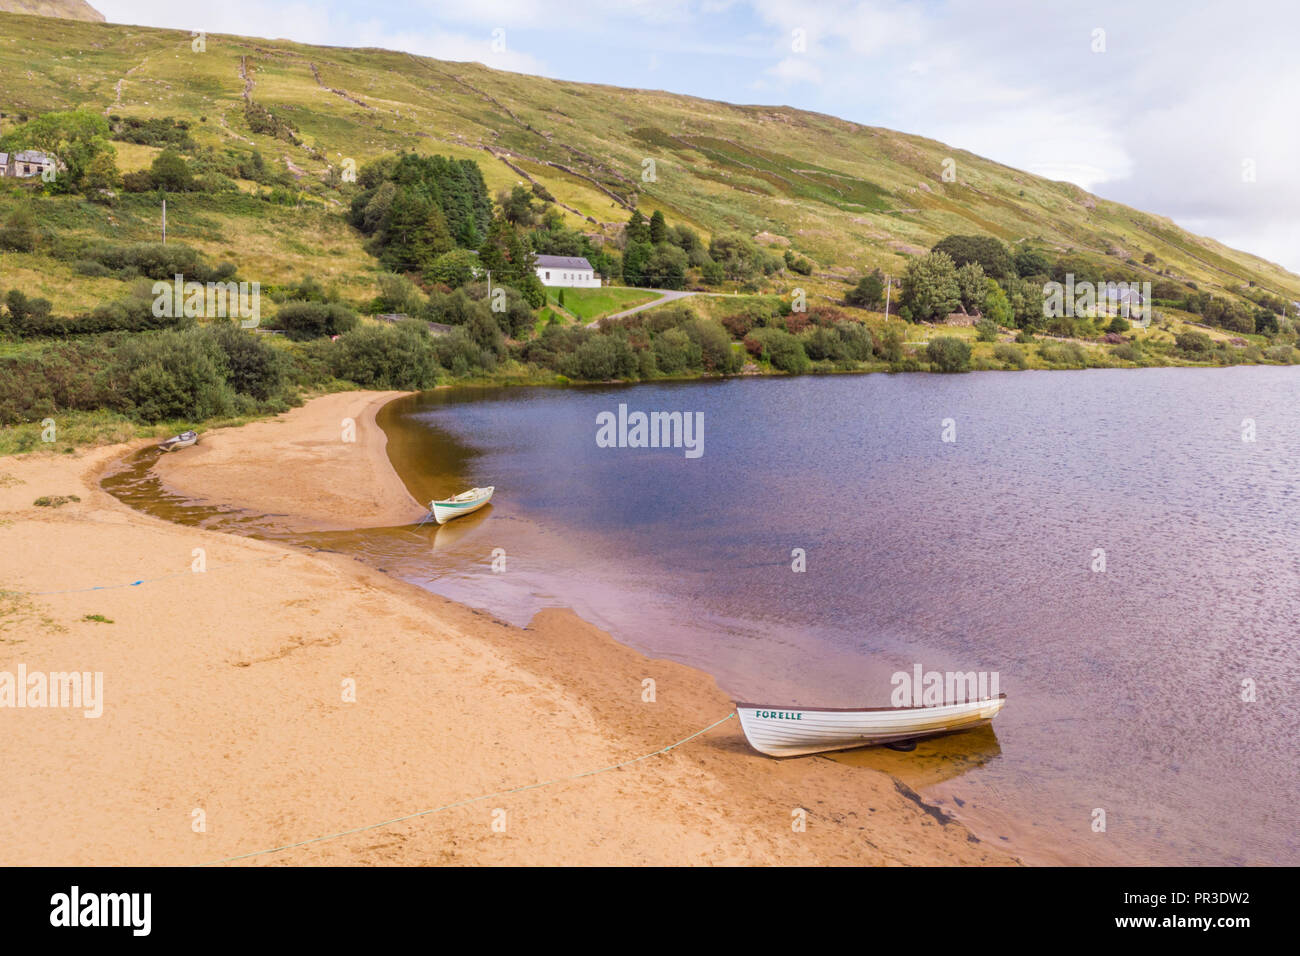 An aerial view of two boats on the beach at scenic Lough Nafooey in the Connemara region of Ireland. Stock Photo